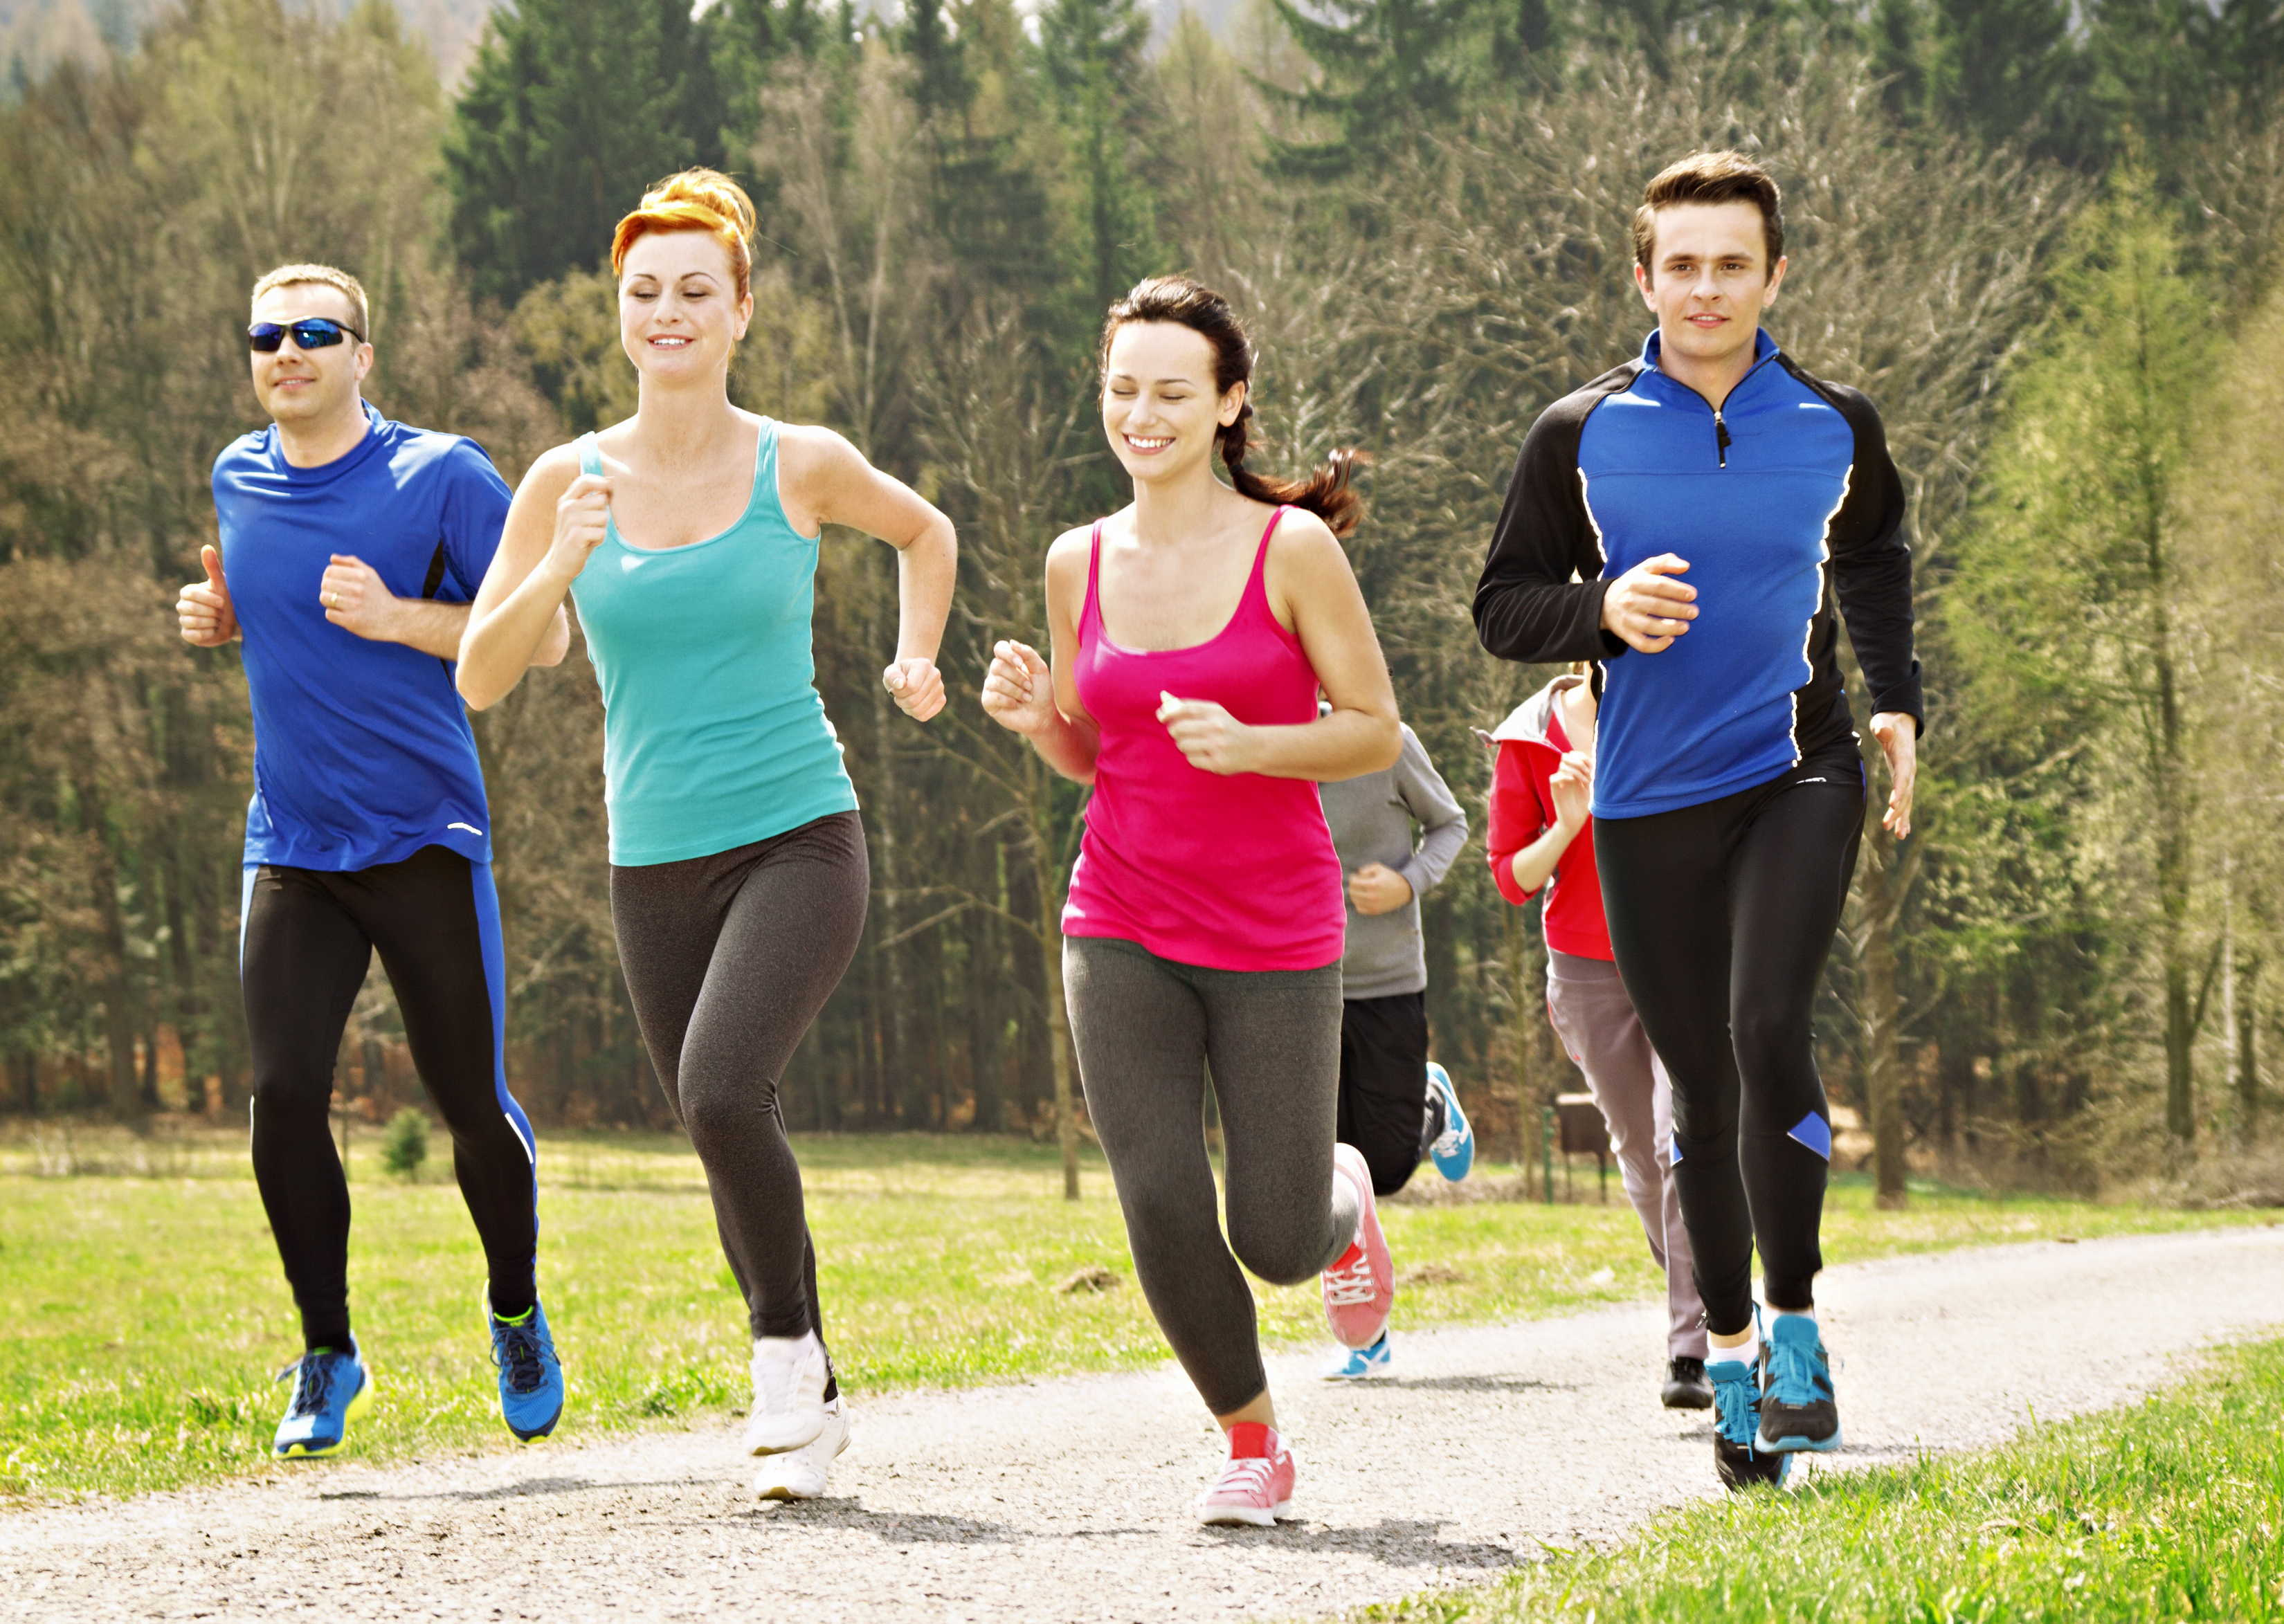 Why We Need a Healthy & Active Lifestyle   Healthfully